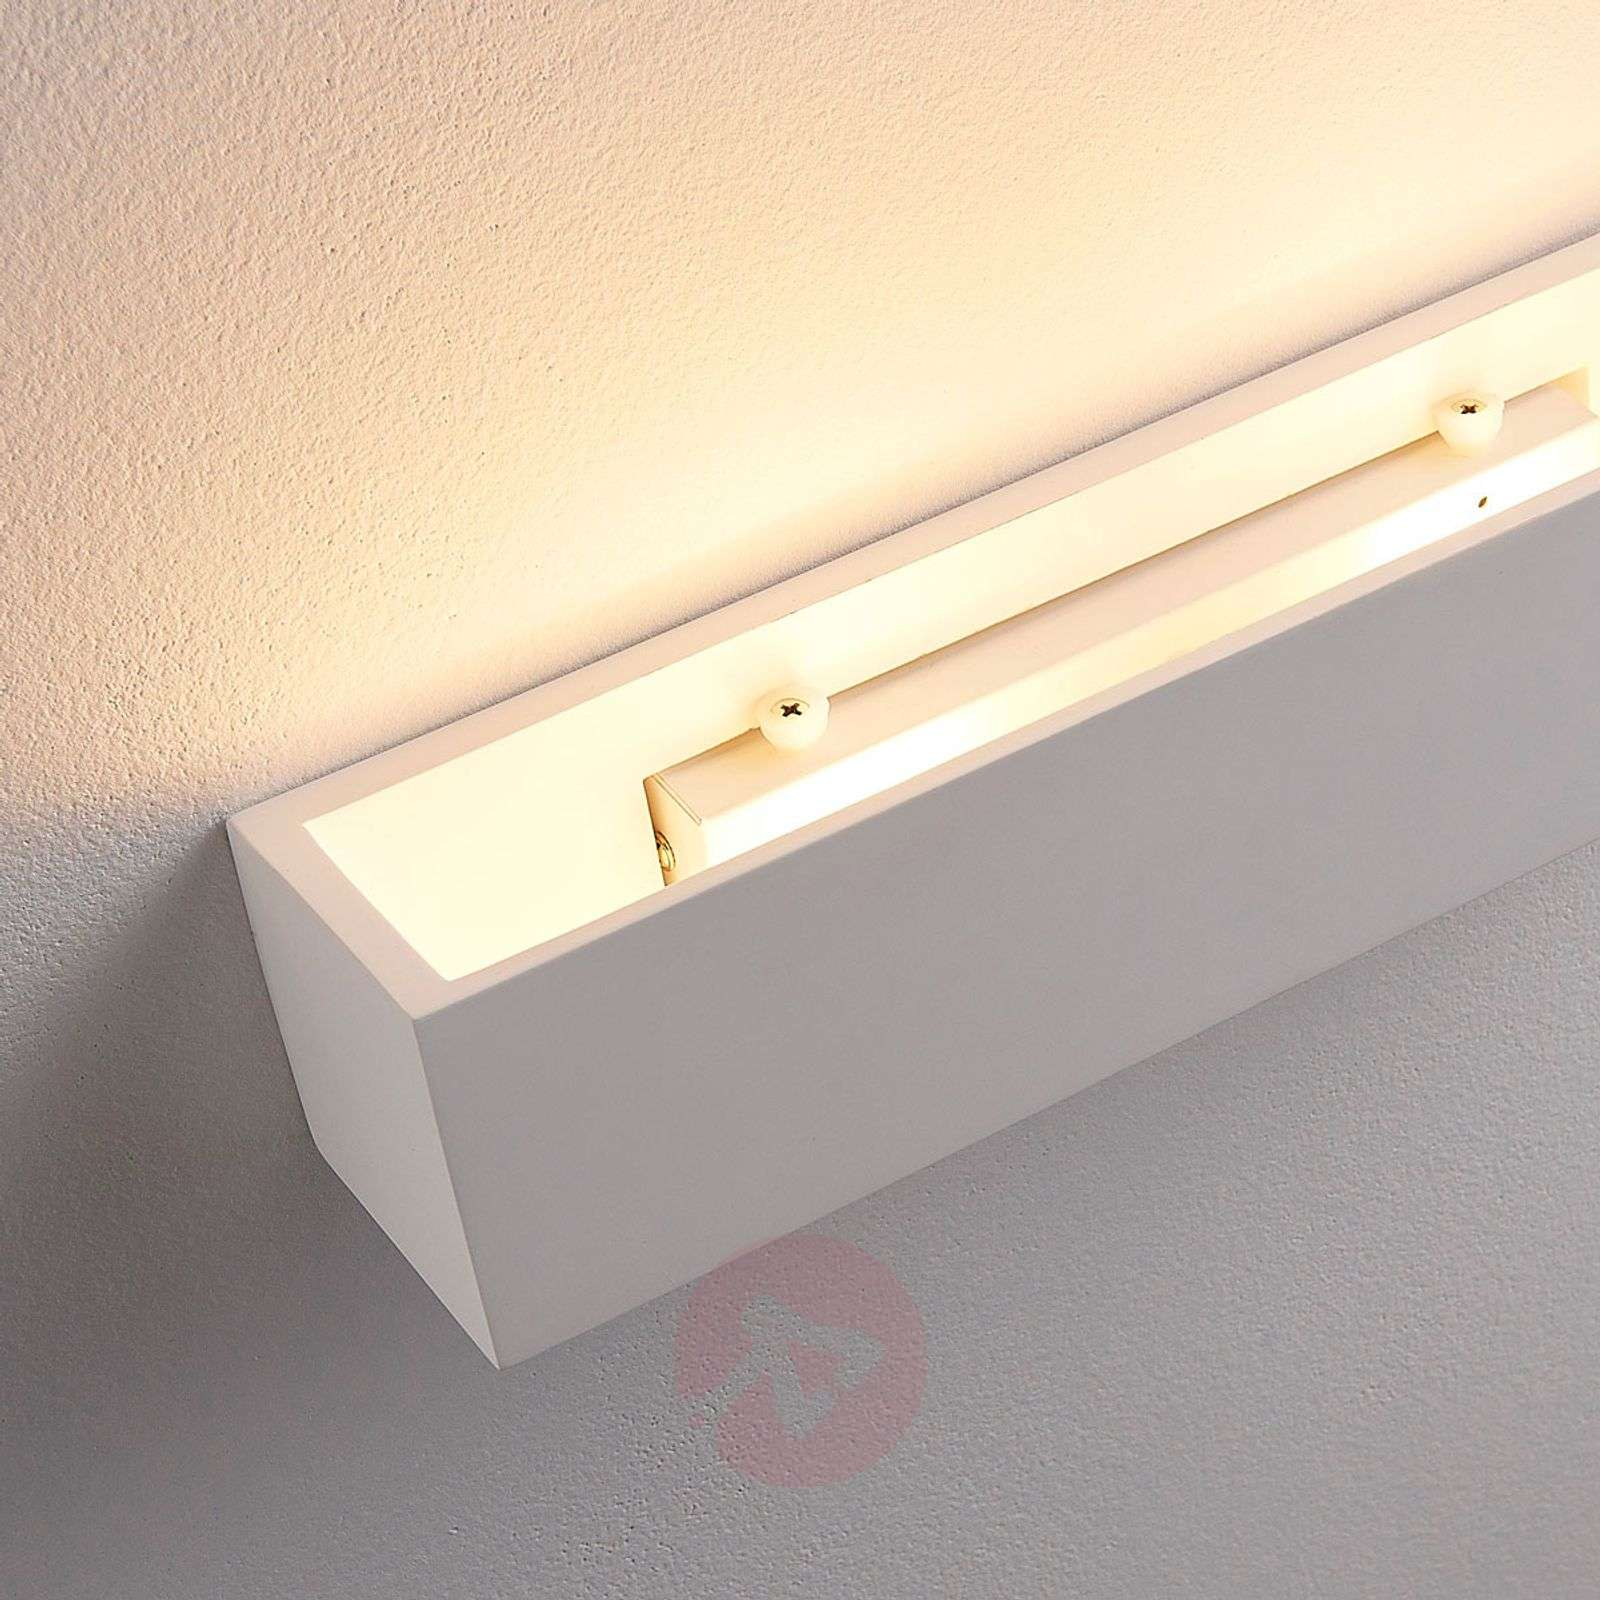 Santino wall light made from white plaster-9621334-02